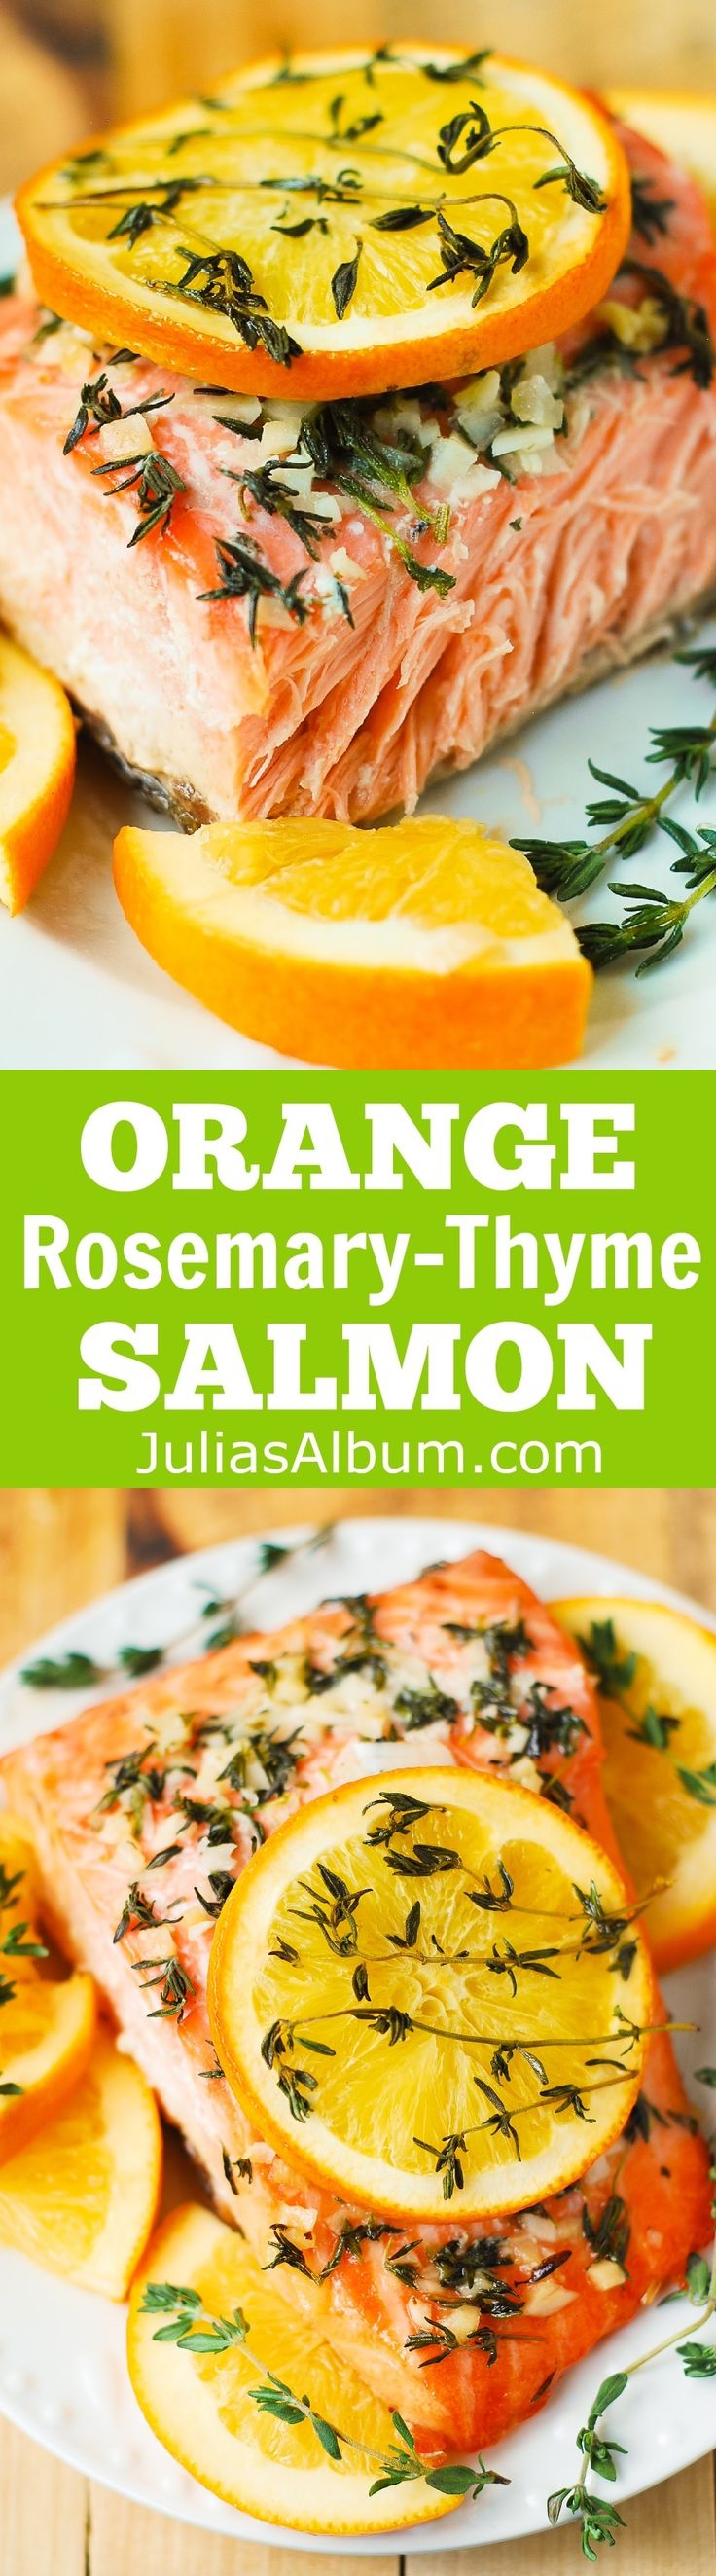 Orange Rosemary-Thyme Garlic Salmon baked in foil.